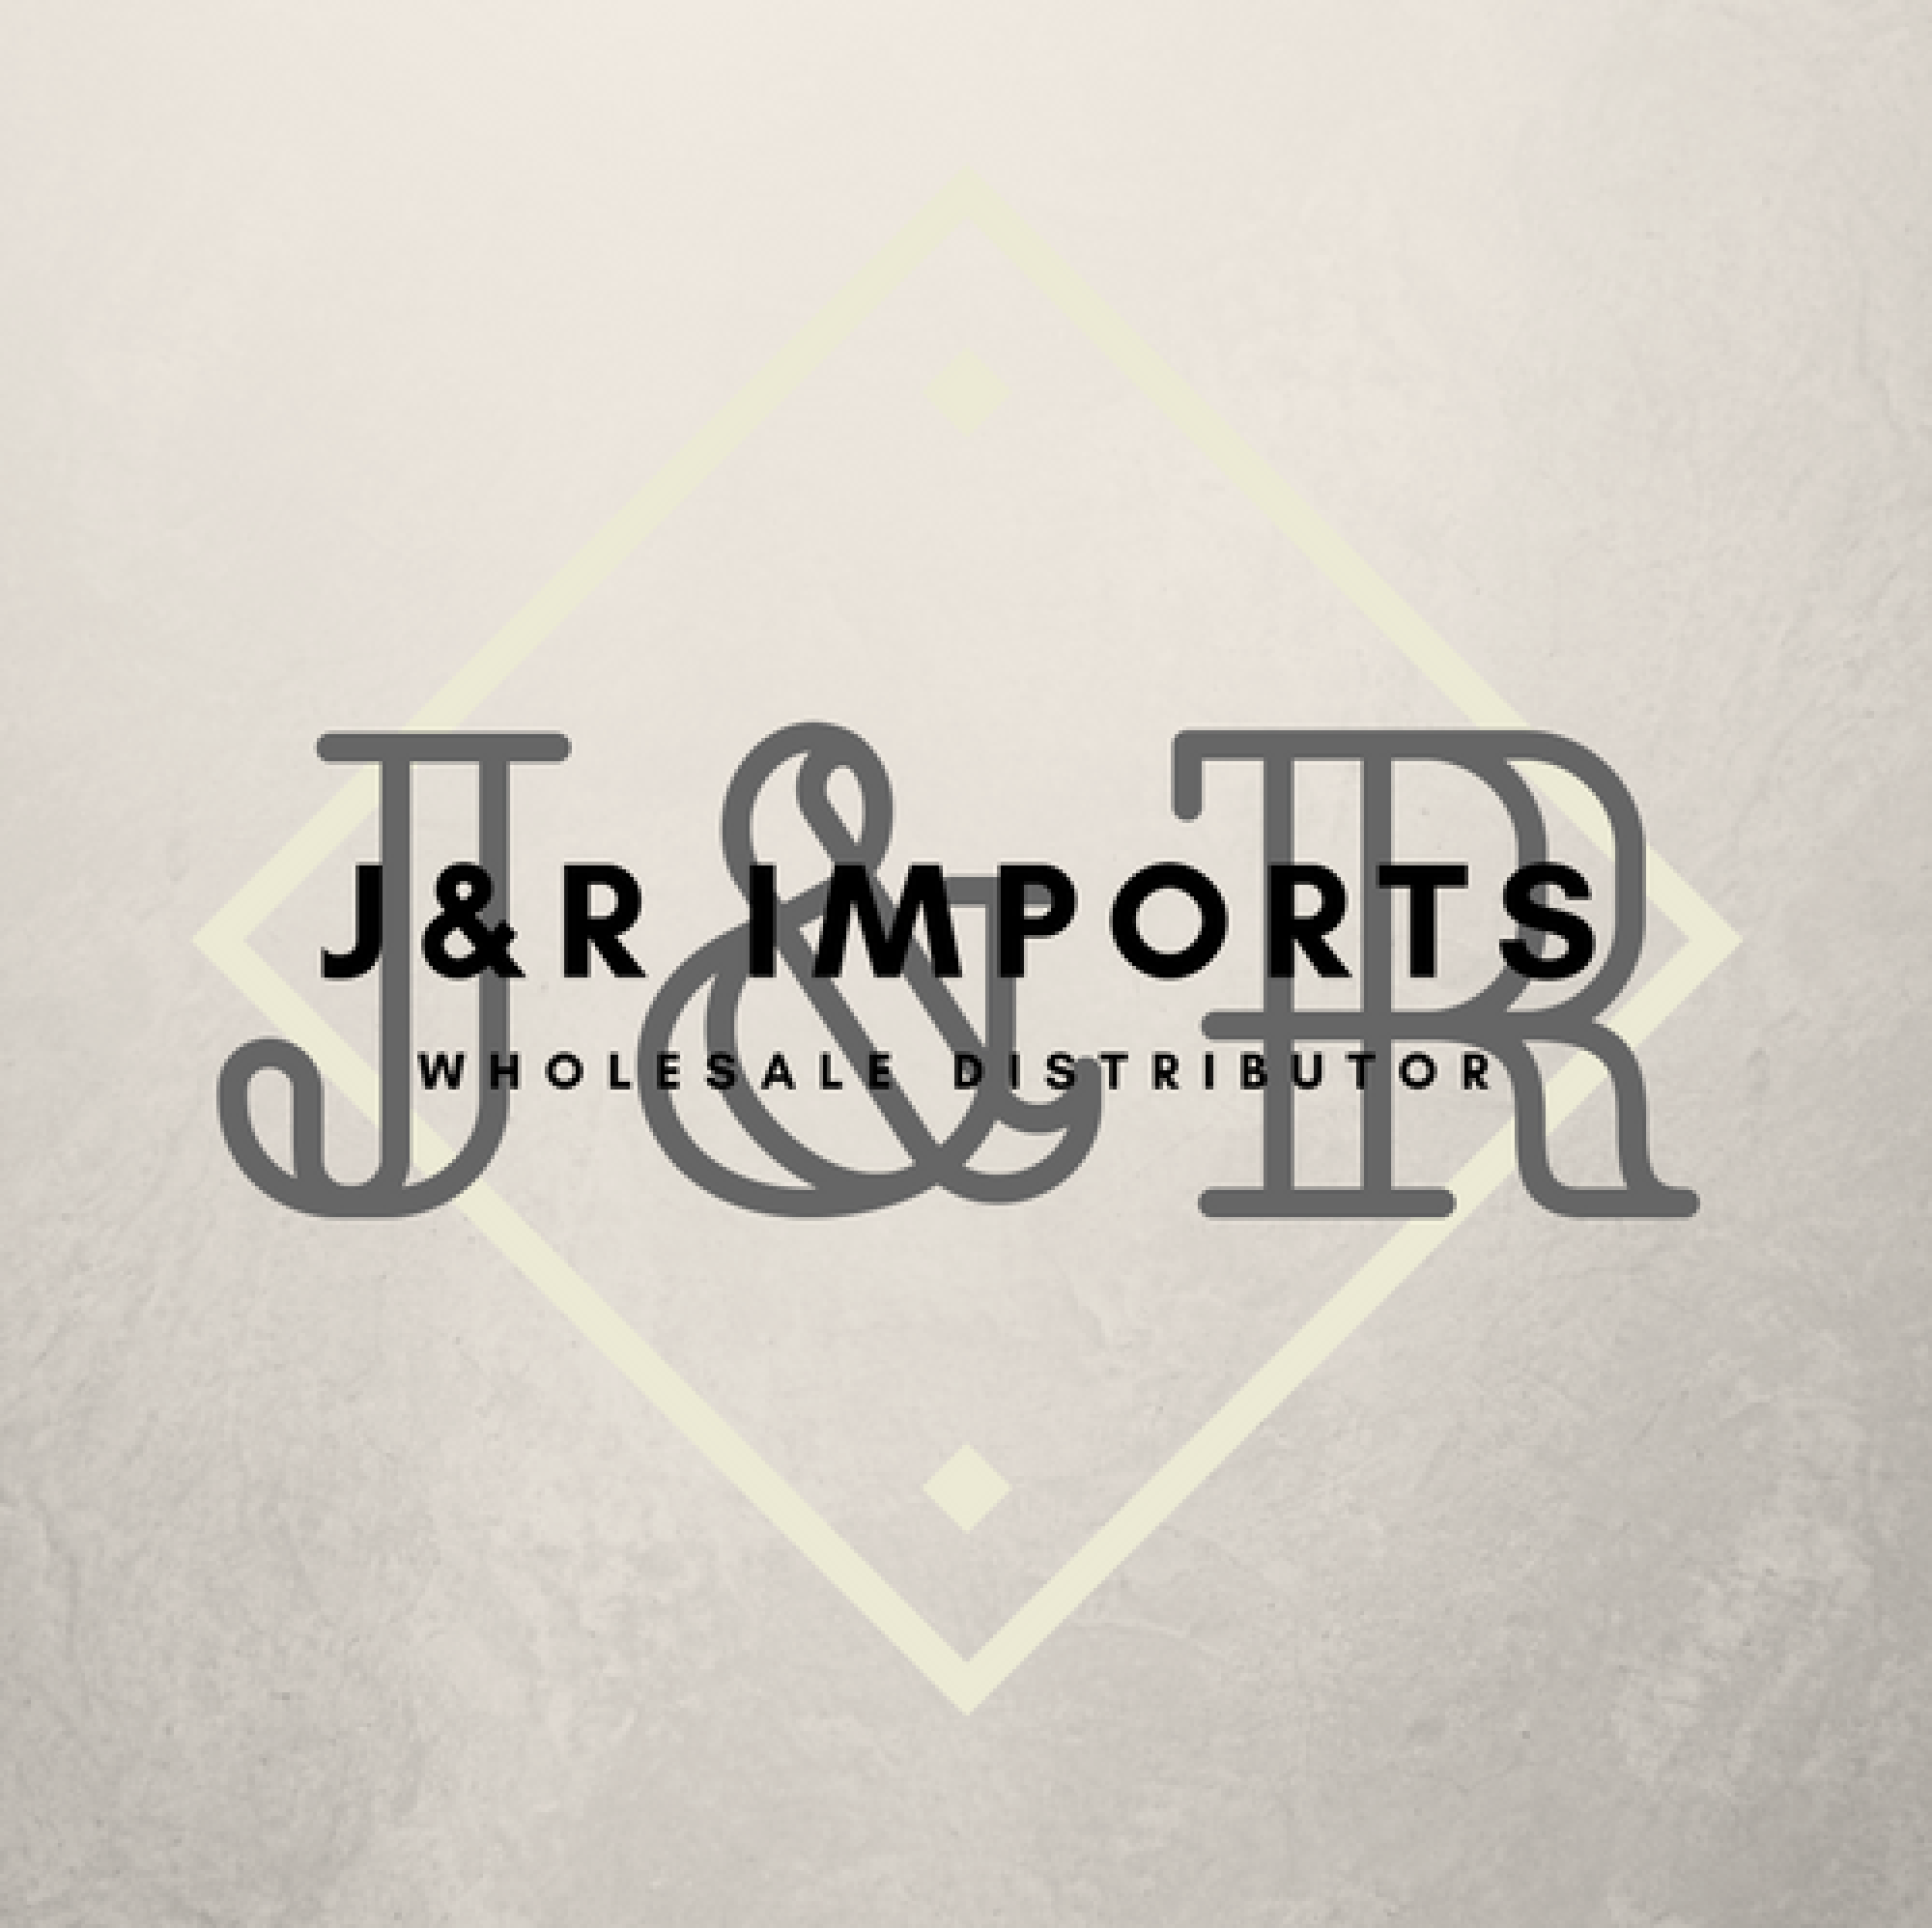 j and r imports – Wholesale Distributor